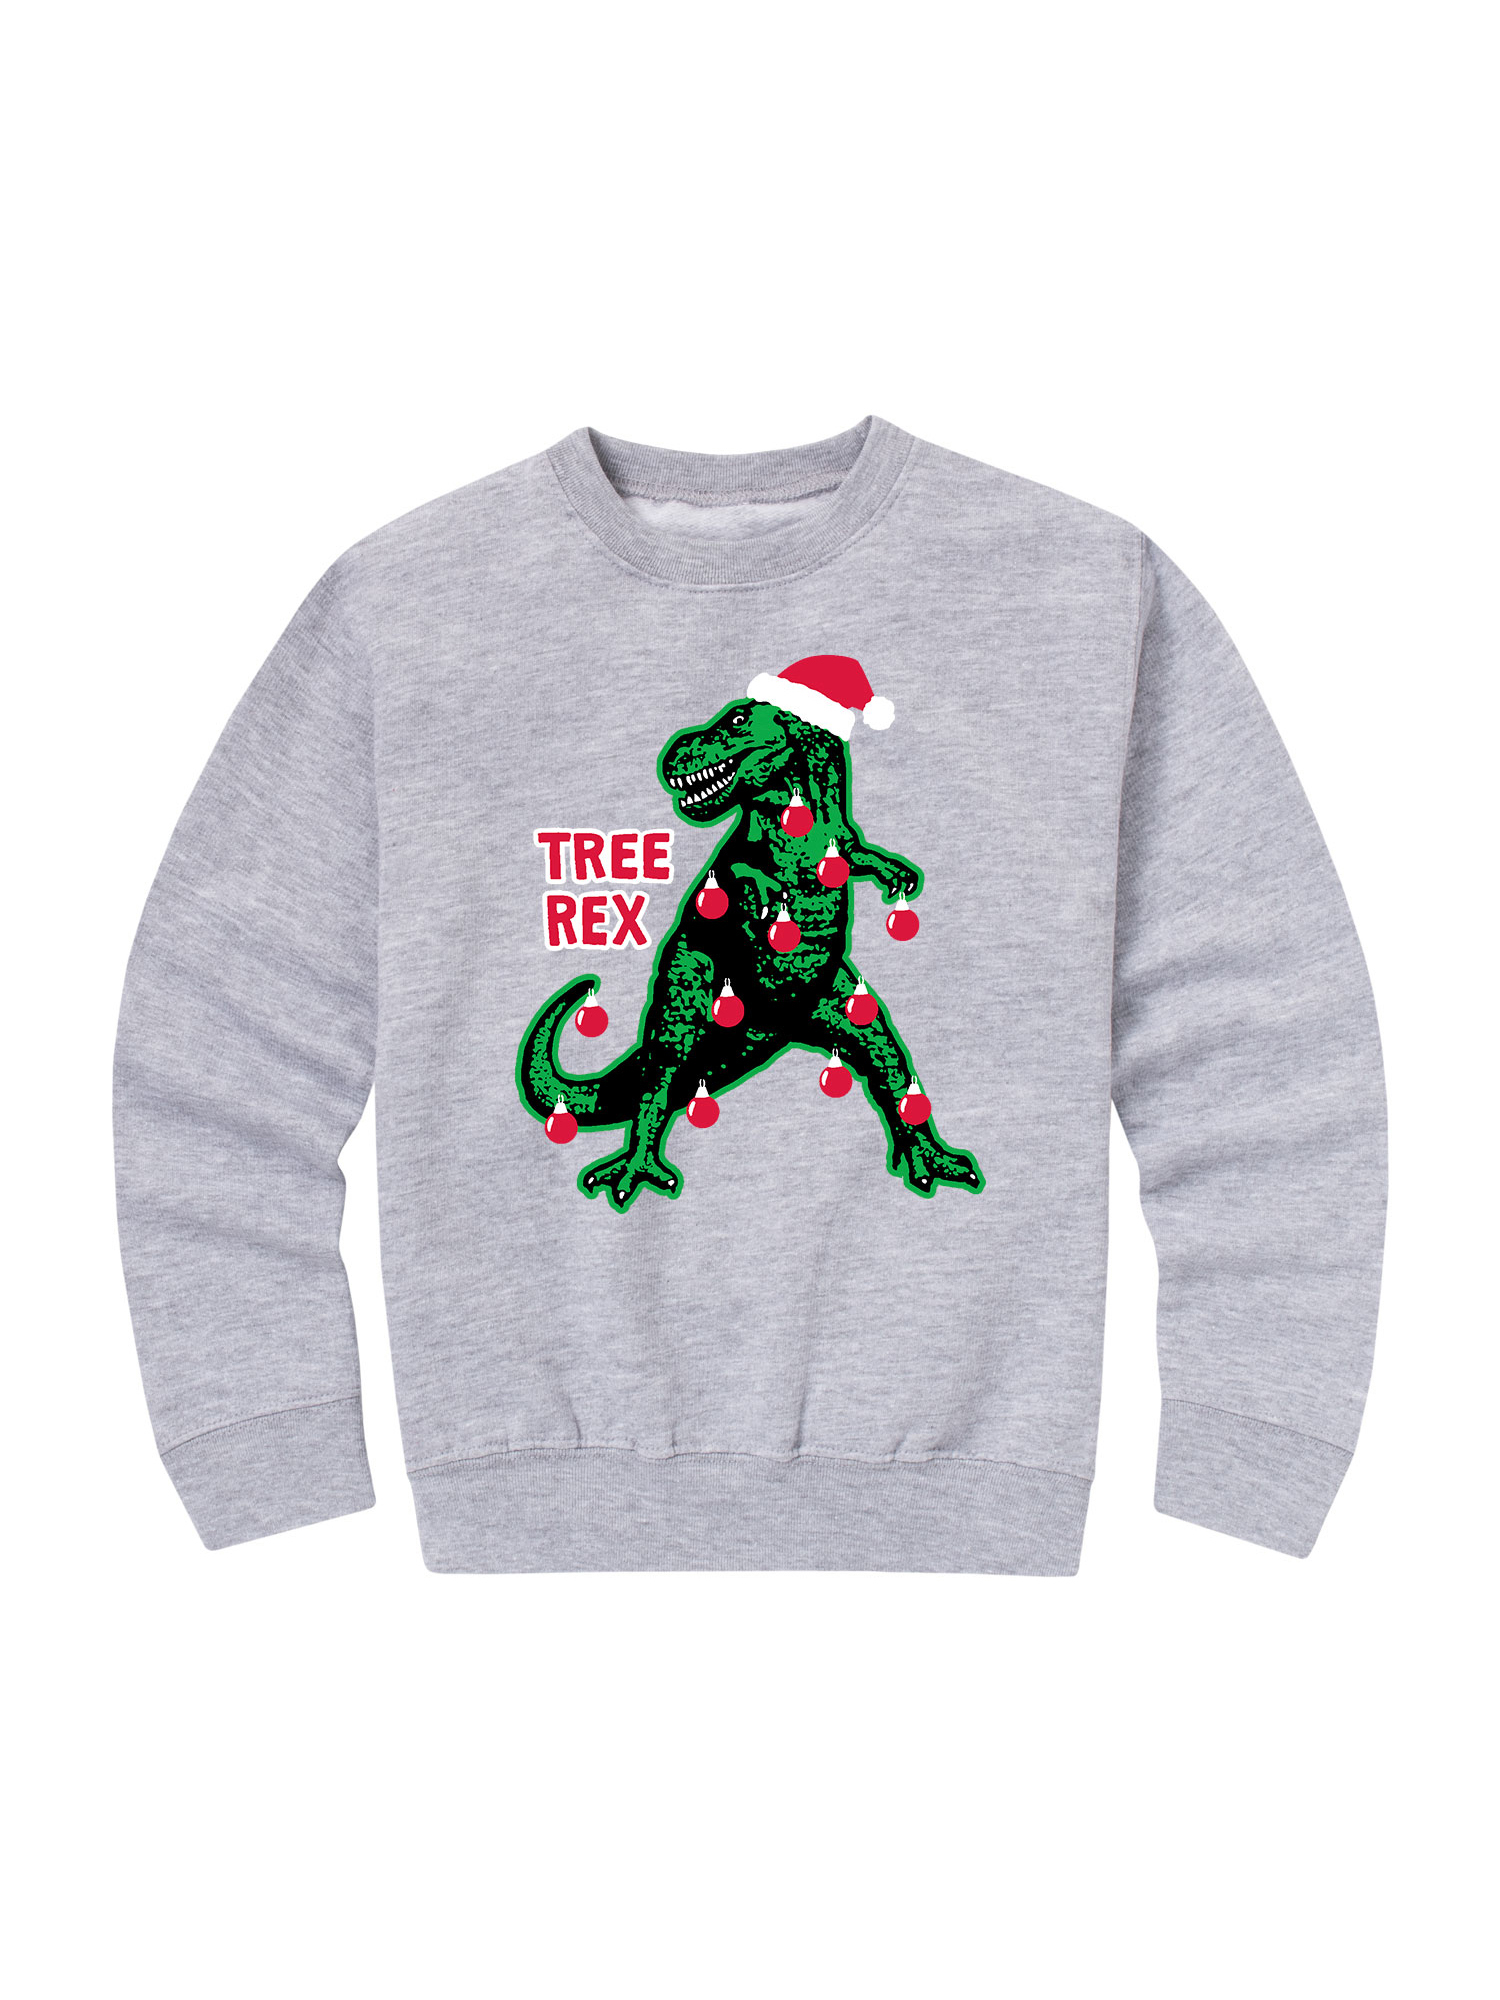 Tree Rex2 - Toddler Crew Fleece